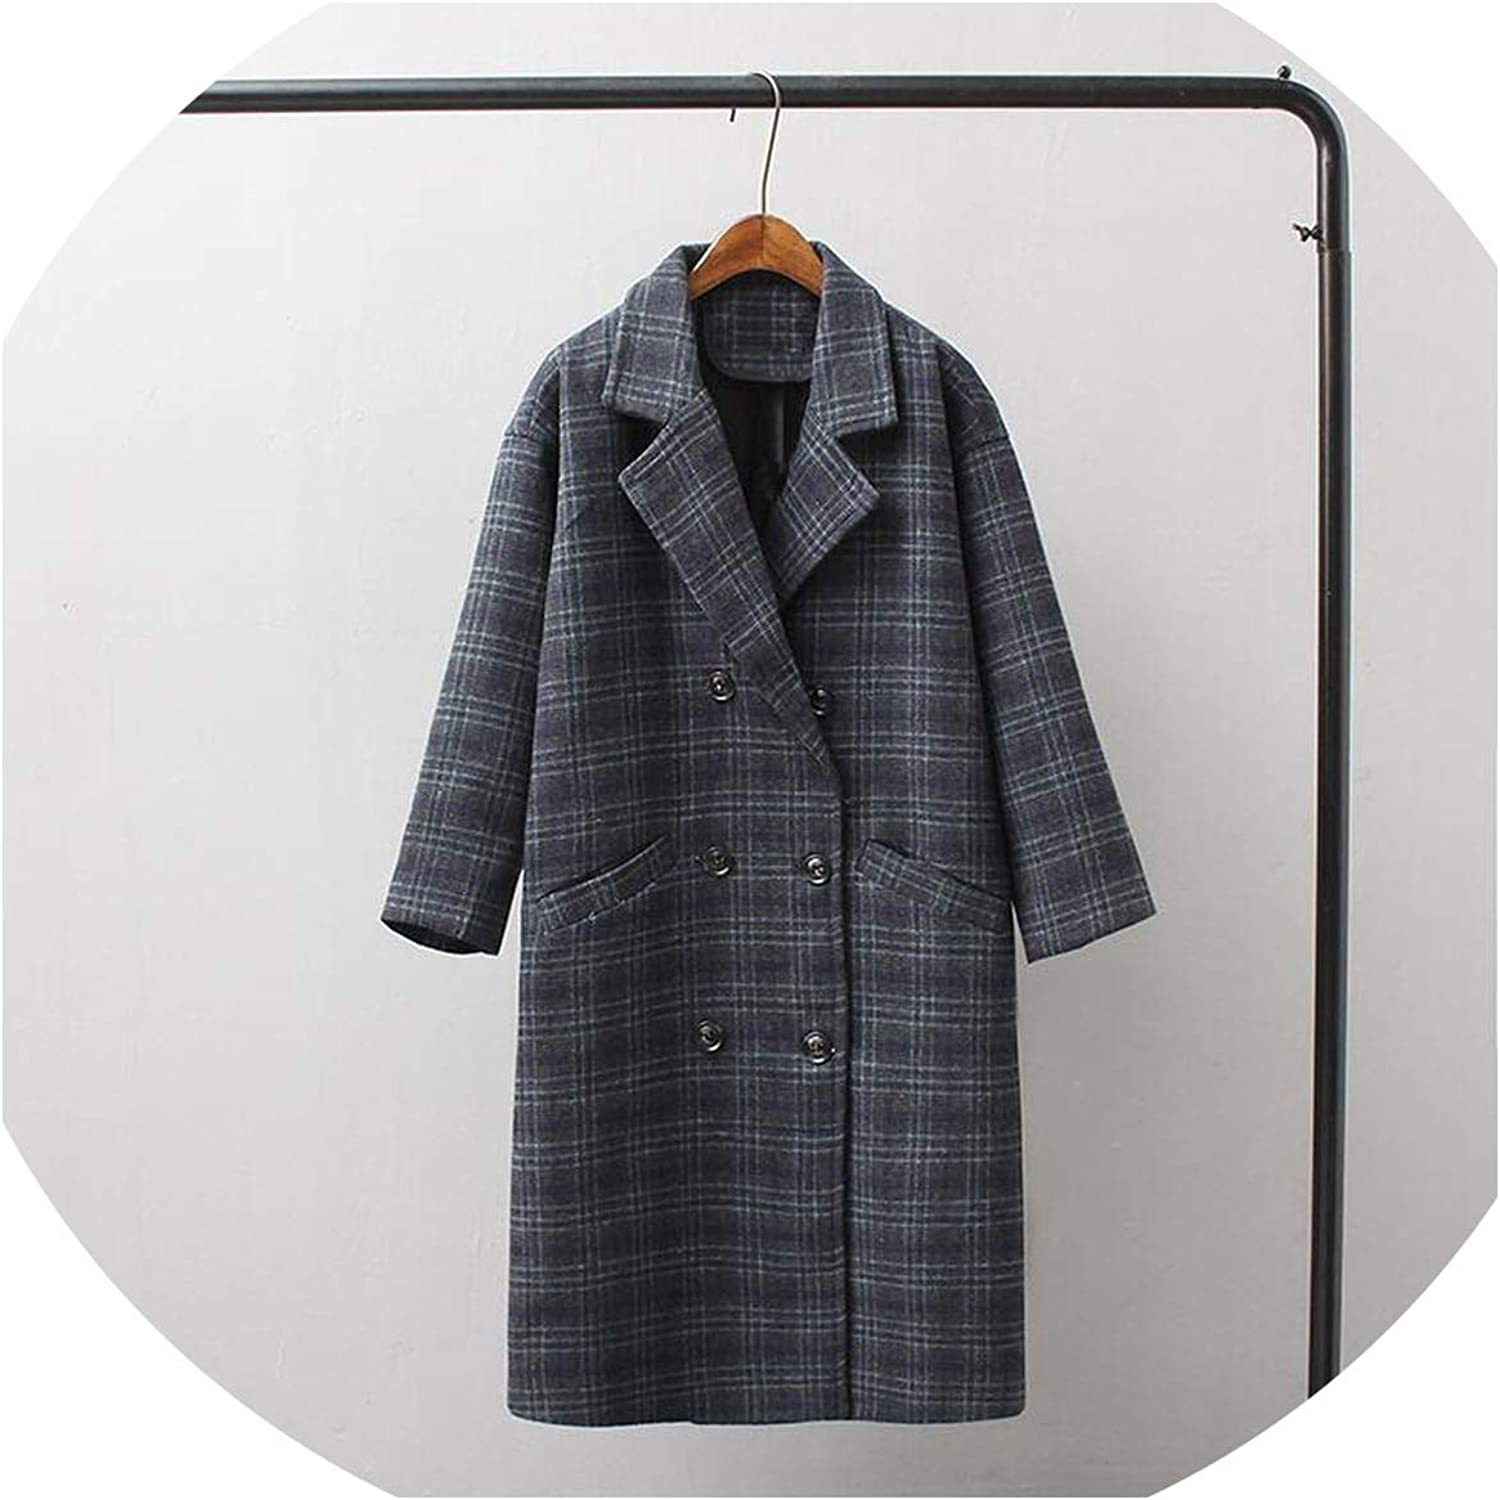 colorfulspace Autumn and Winter Women's Coat Casual Plaid DoubleBreasted Long Coat